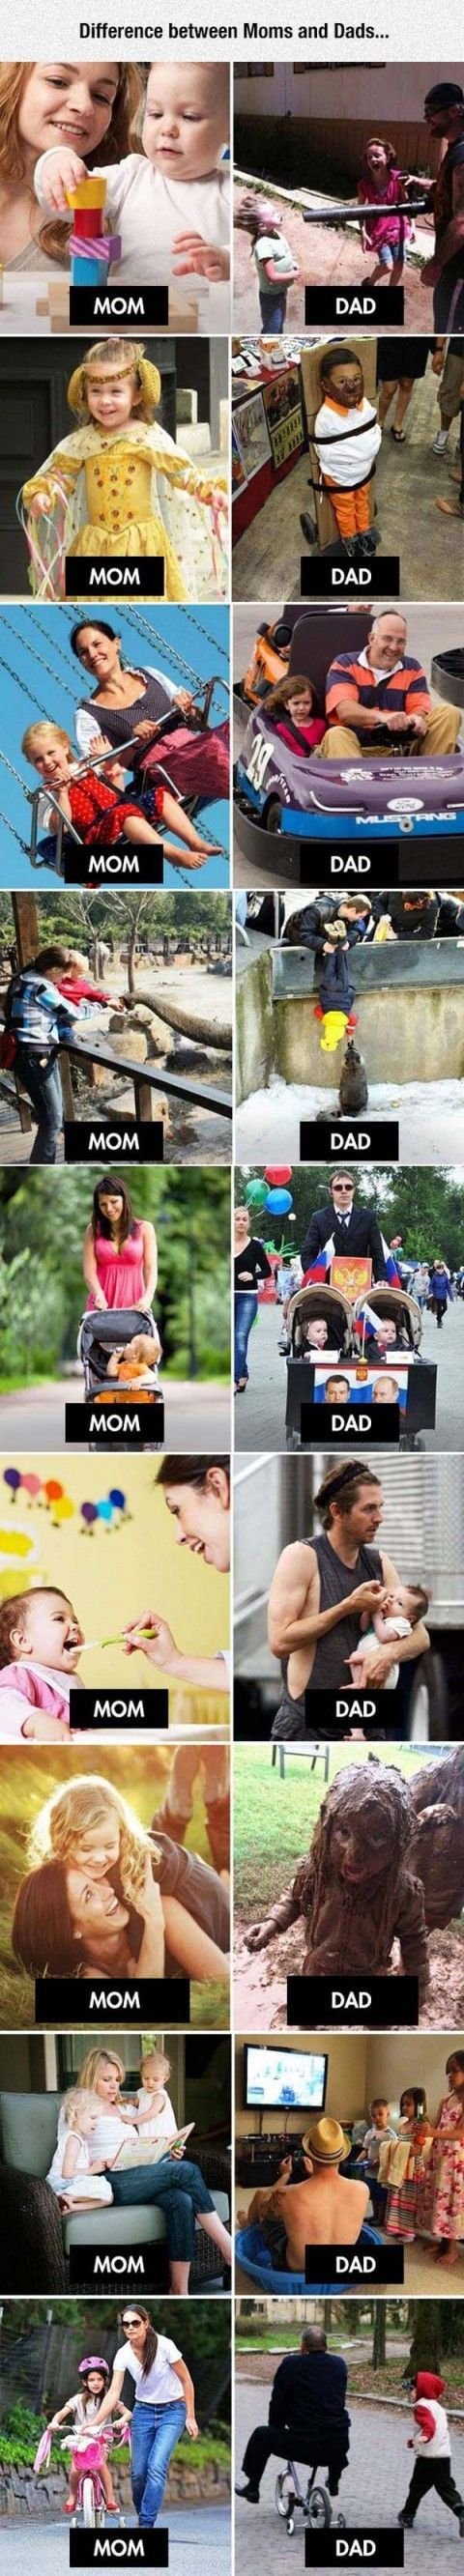 moms and dads